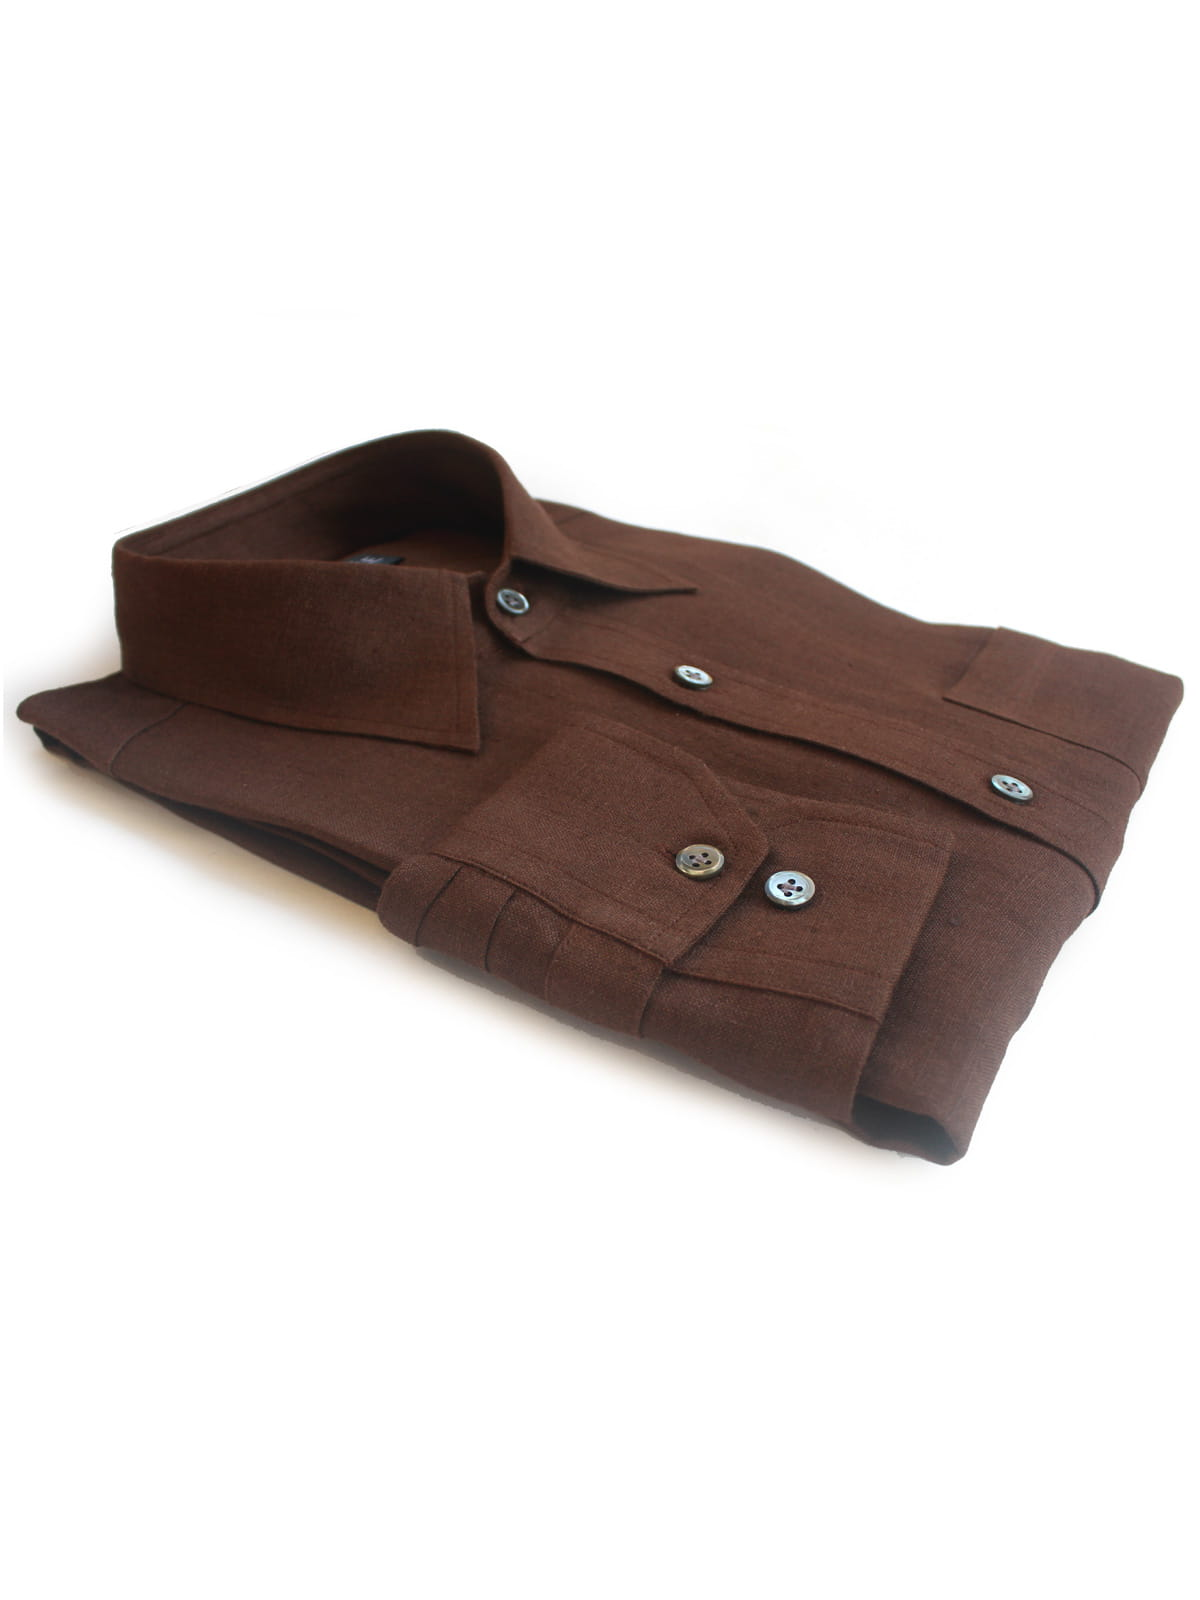 Brown Linen Shirts India